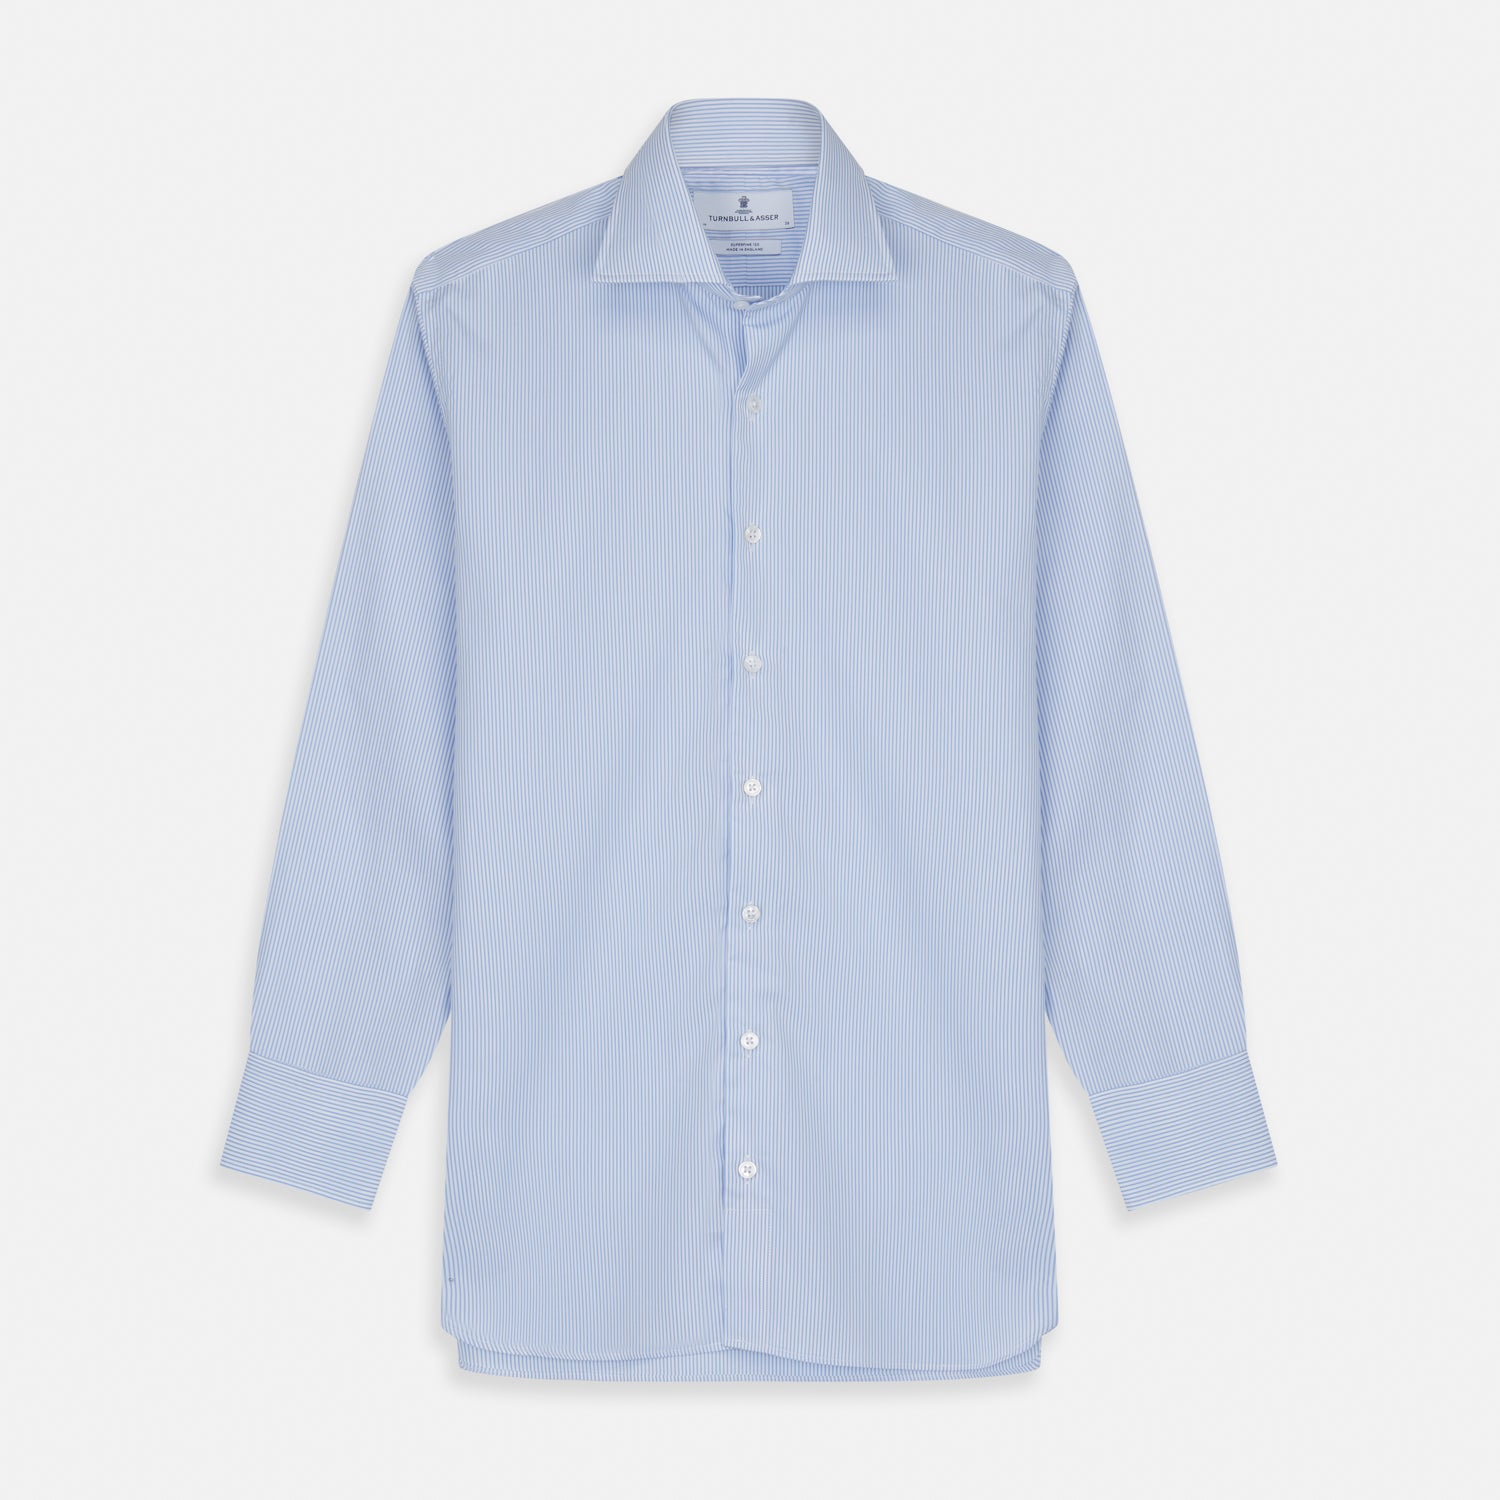 Blue Bengal Stripe Tailored Fit Shirt with Kent Collar and 2-Button Cuffs - 18.0 from Turnbull & Asser